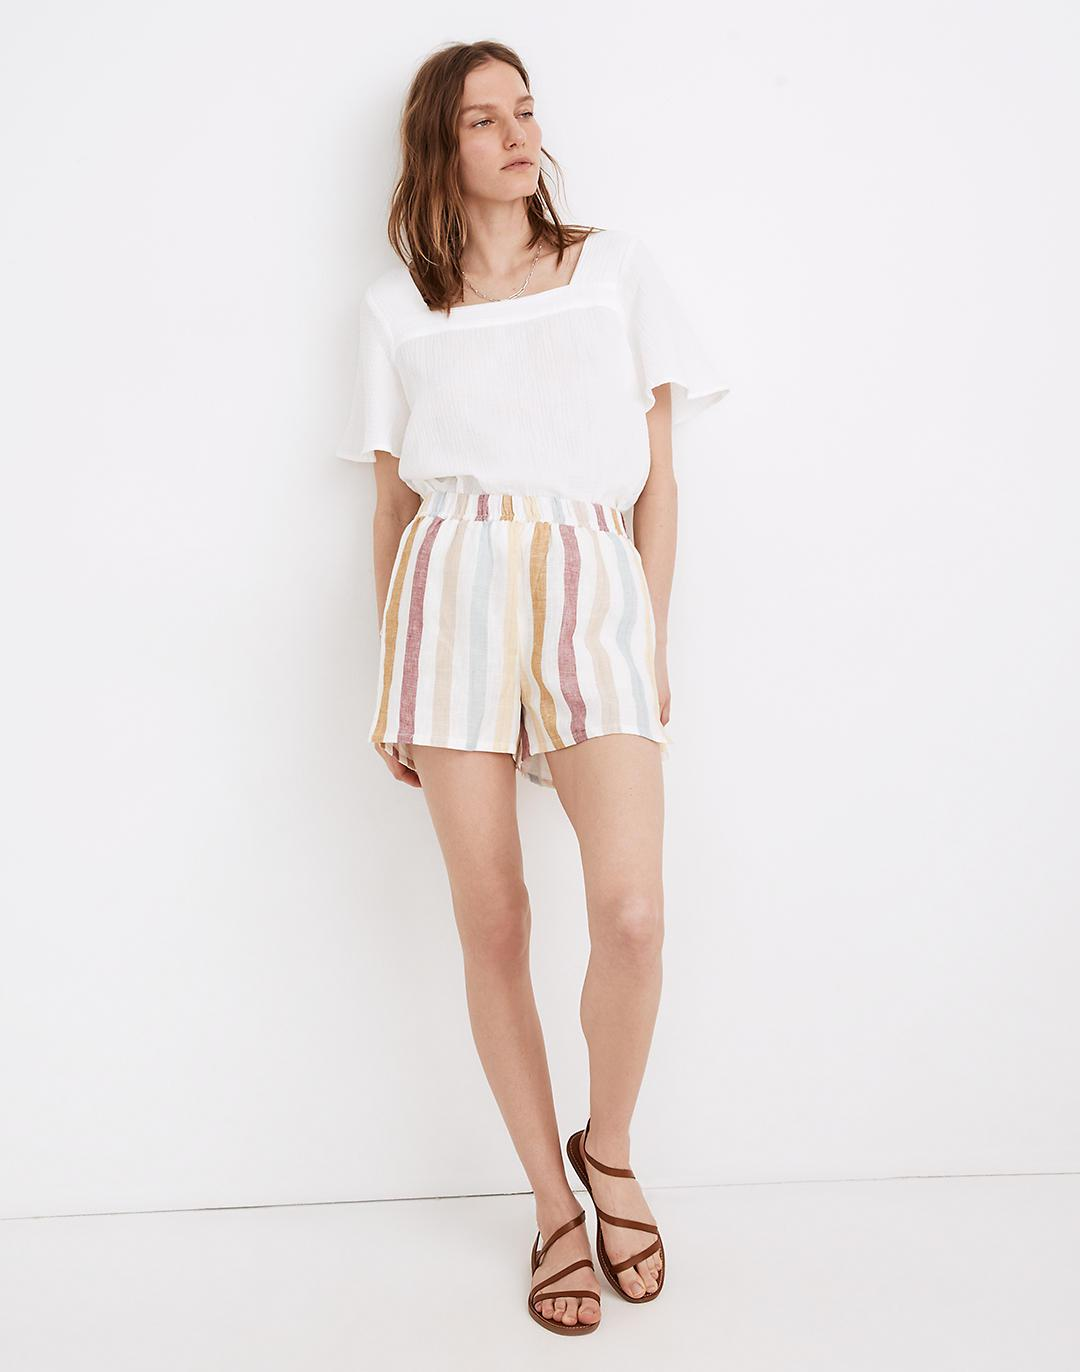 Madewell x LAUDE the Label Everyday Shorts in Painter Stripe